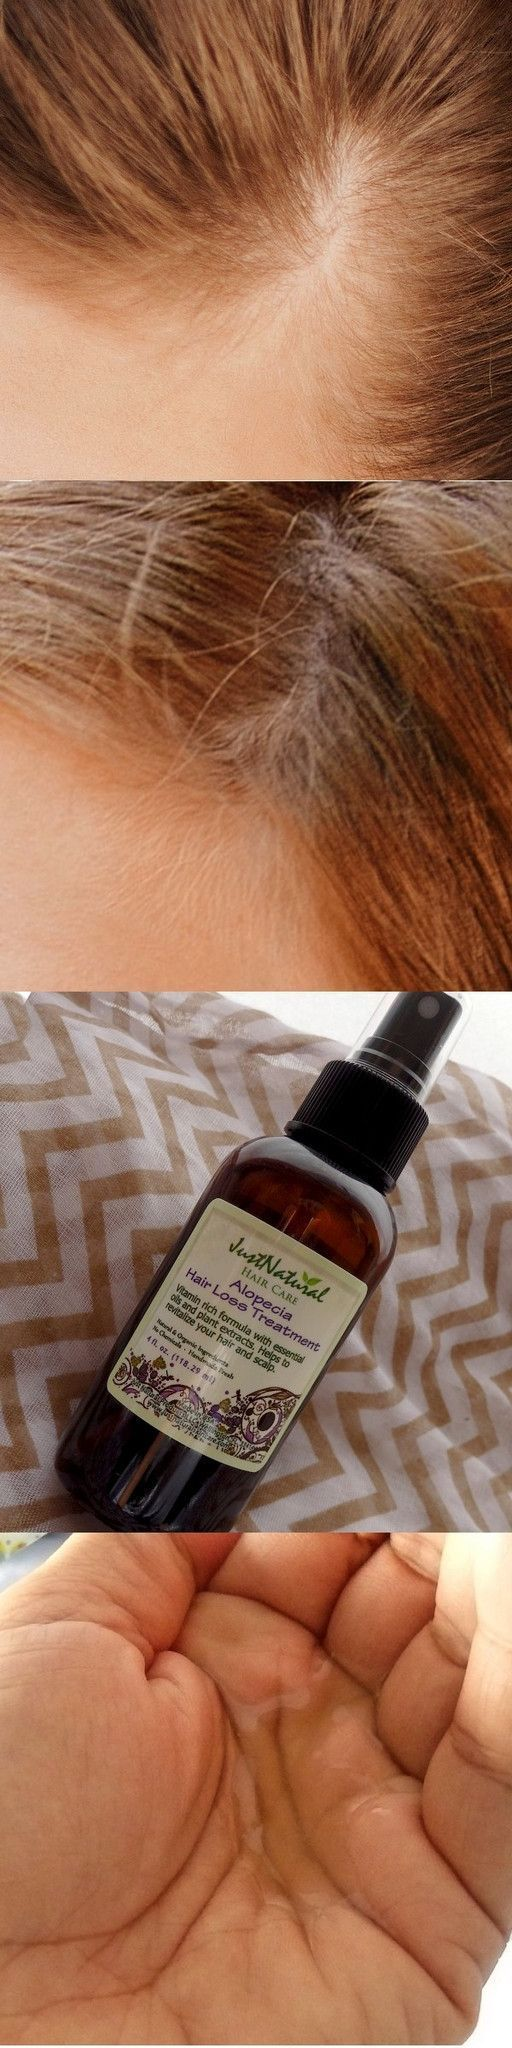 Alopecia Hair Loss Treatment www.hairgrowingge